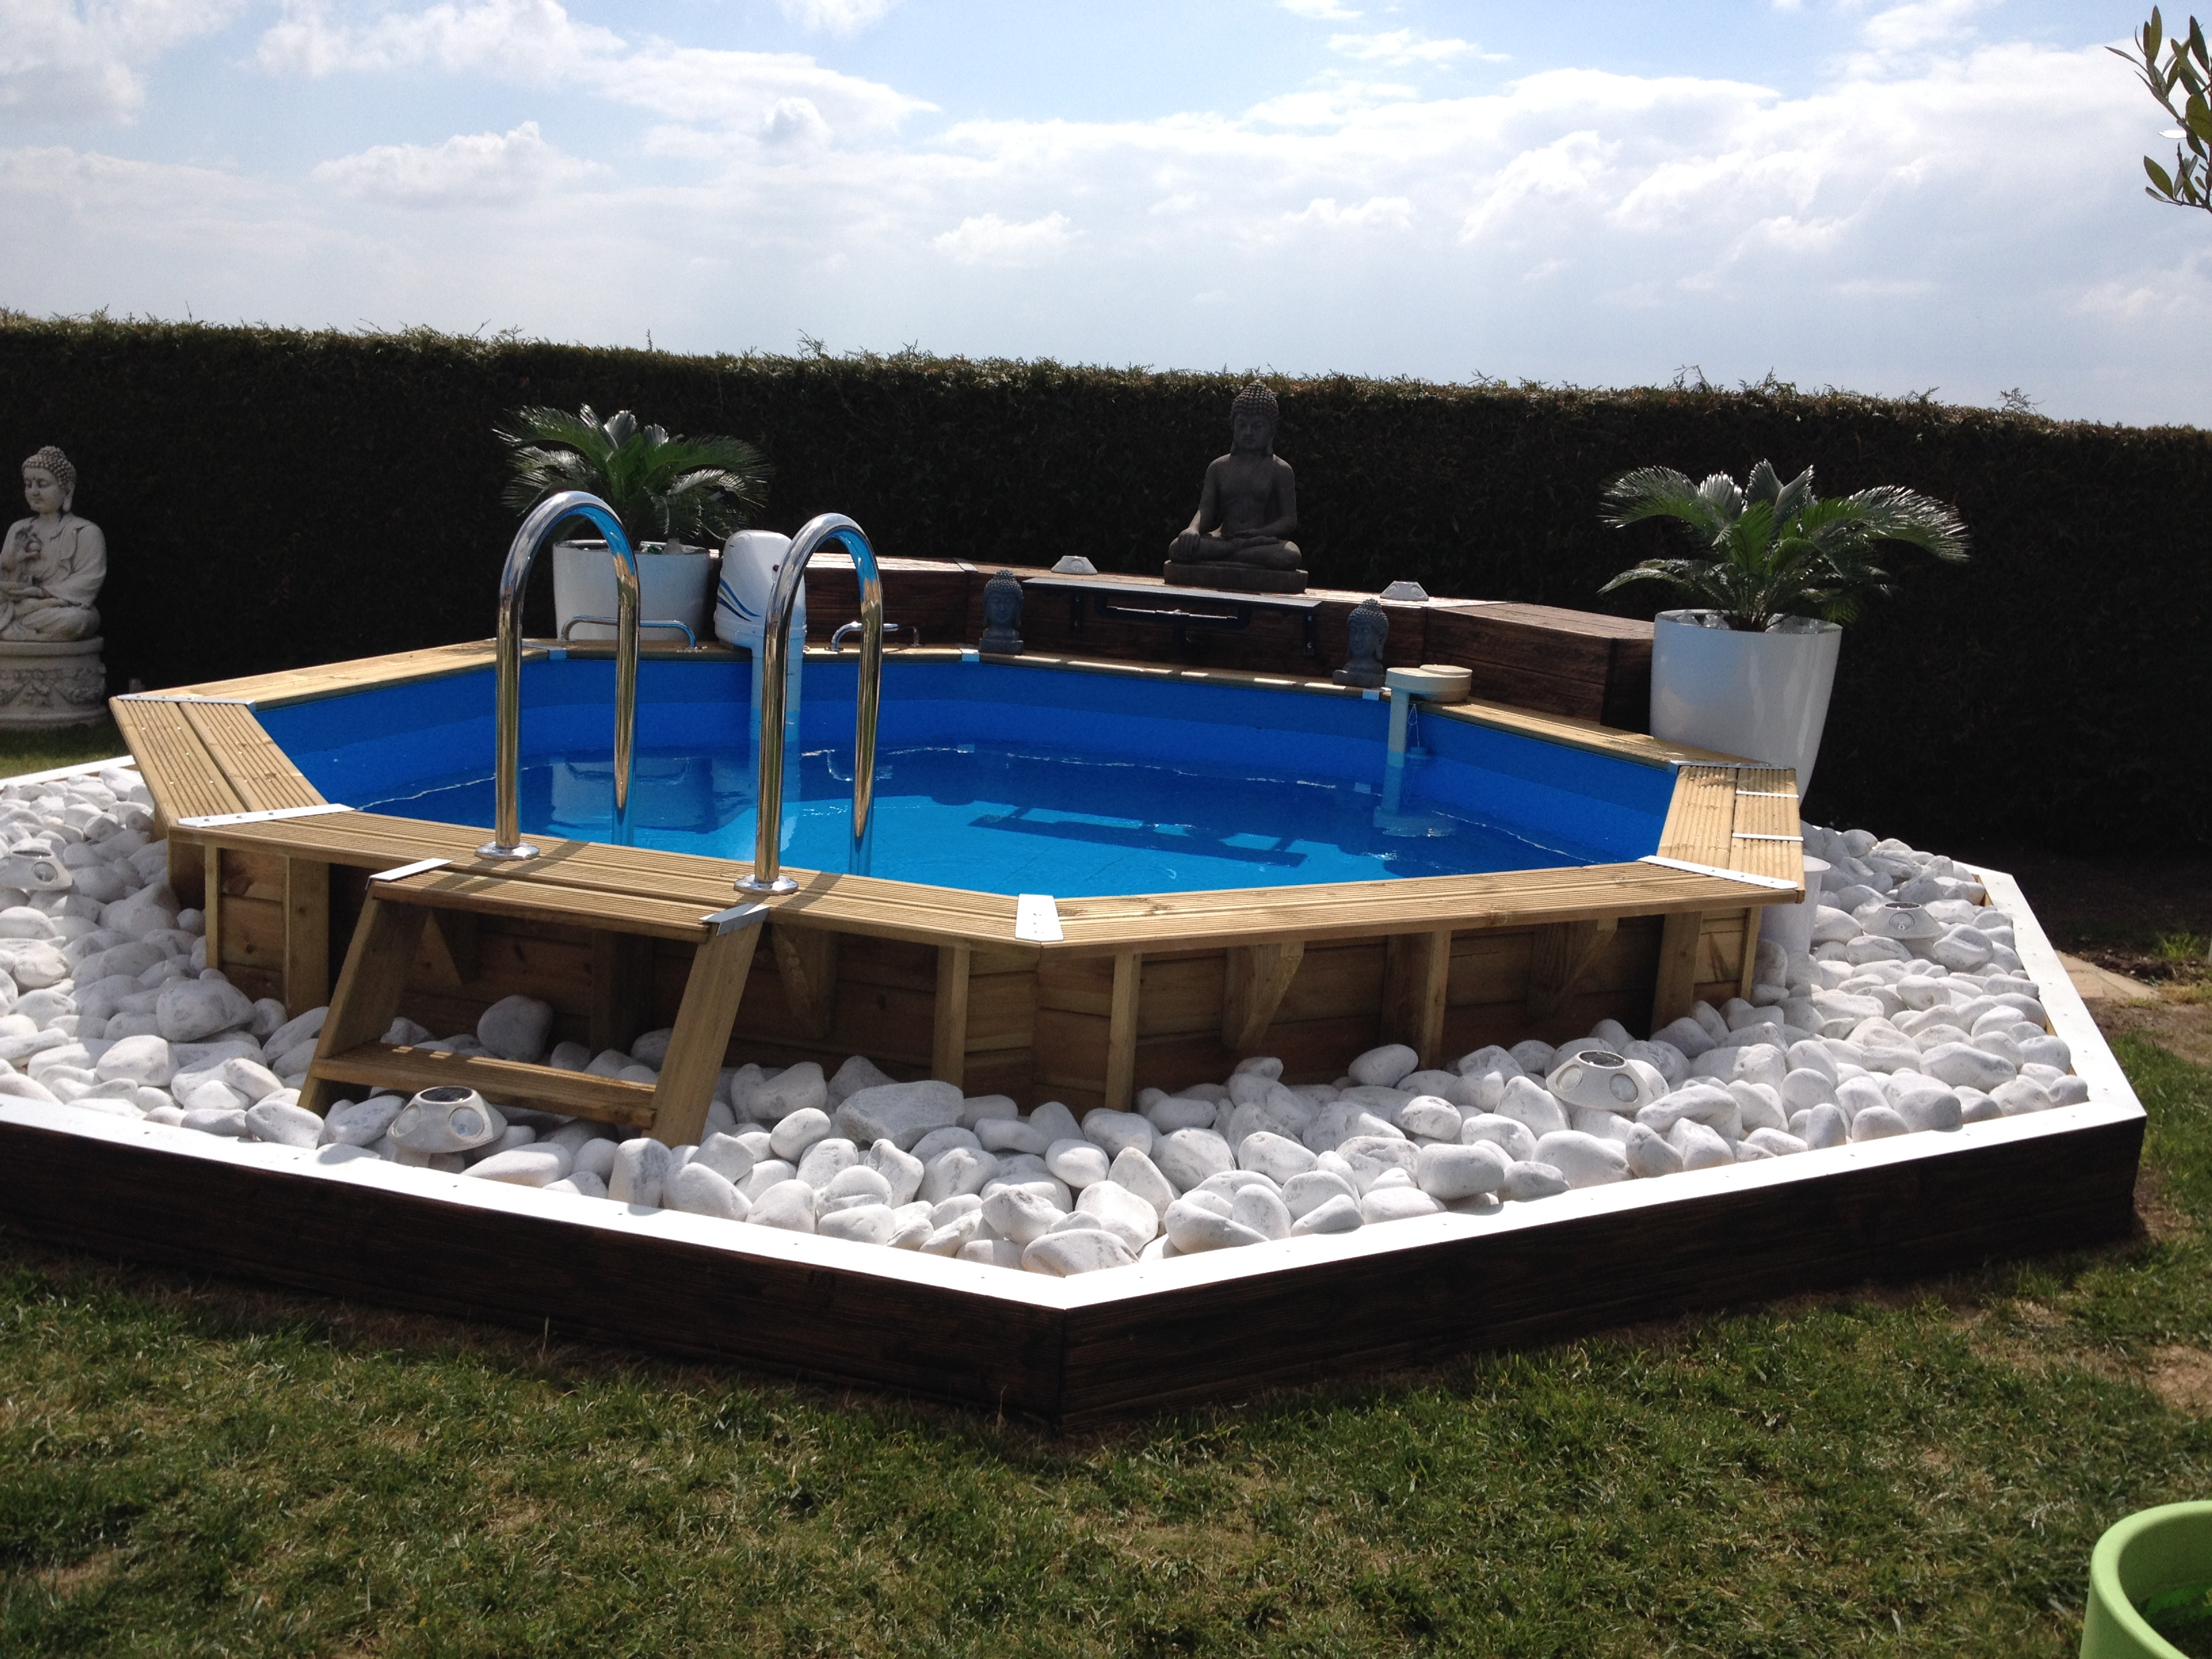 Votre piscine sur le blog de mypiscine blog - Amenagement piscine hors sol photo besancon ...